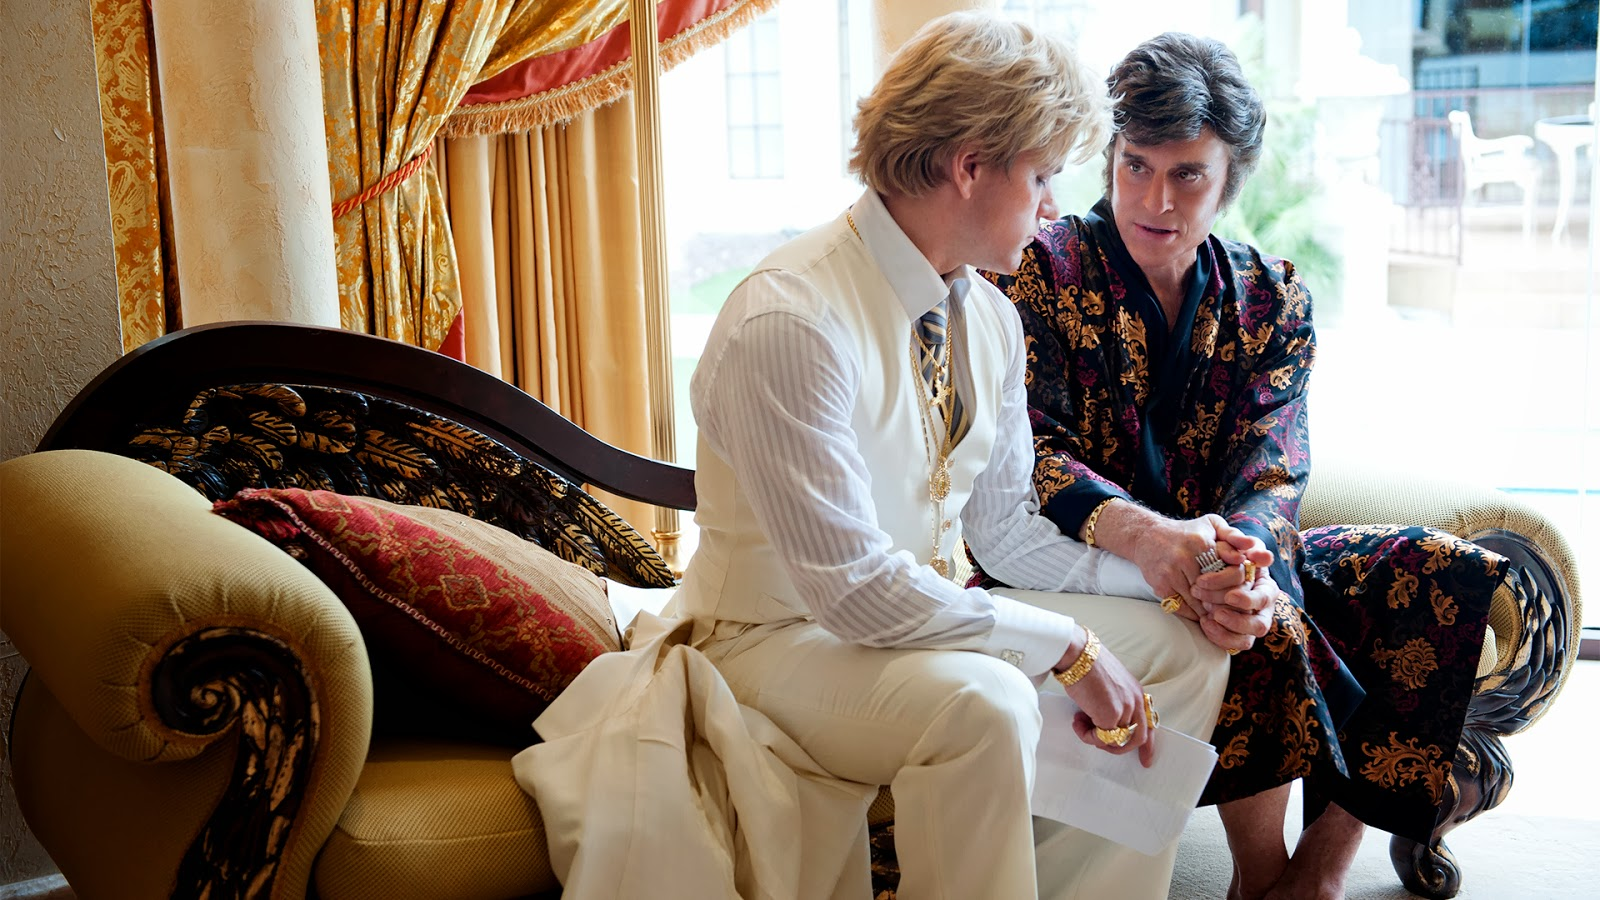 Matt Damon and Michael Douglas as Scott Thorson and Liberace in Behind the Candelabra